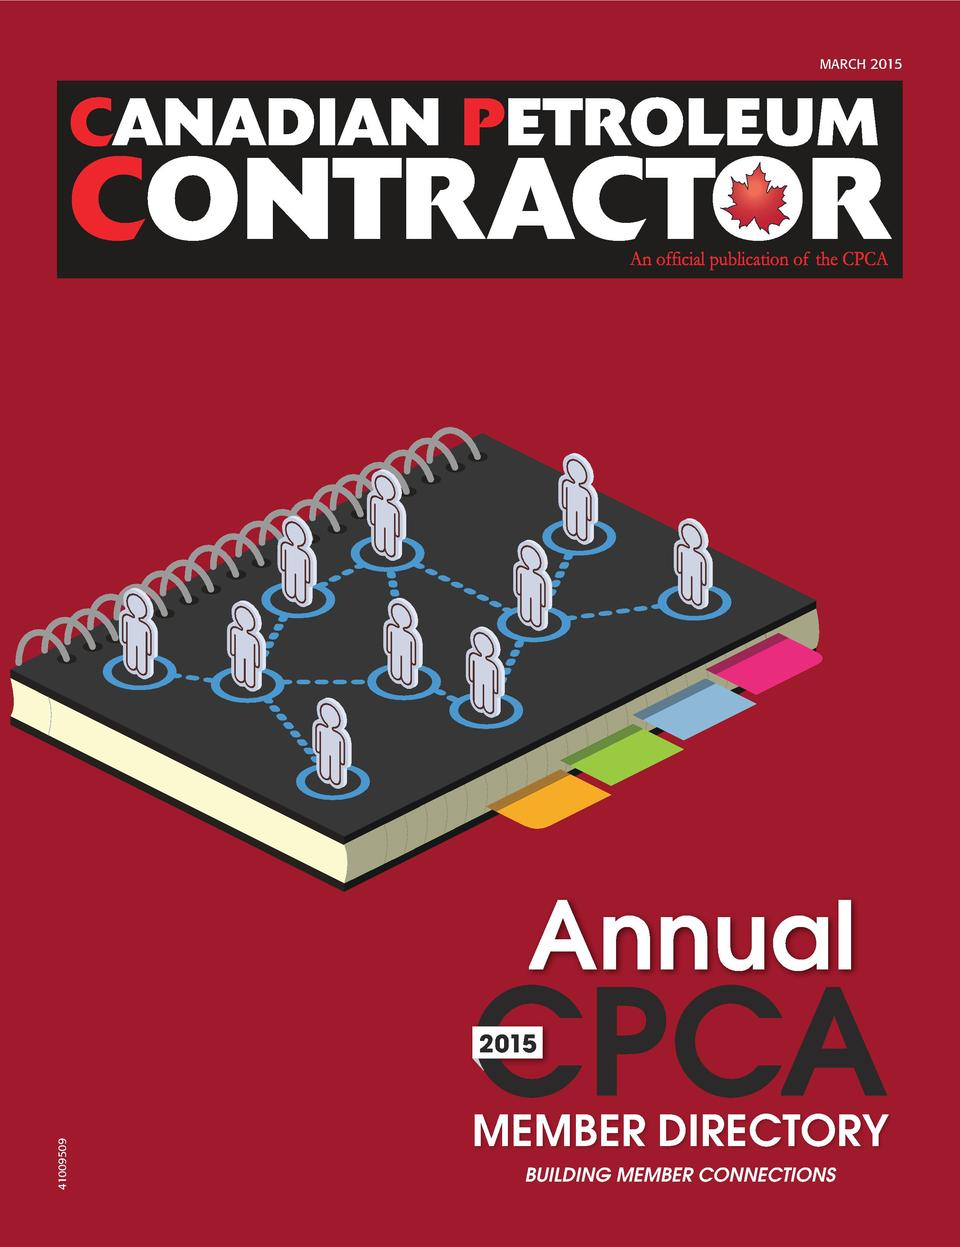 MARCH 2015  Annual  CPCA 41009509  2015  CPCA_Mar15_FINAL.indd 1  MEMBER DIRECTORY BUILDING MEMBER CONNECTIONS  2015-03-05...